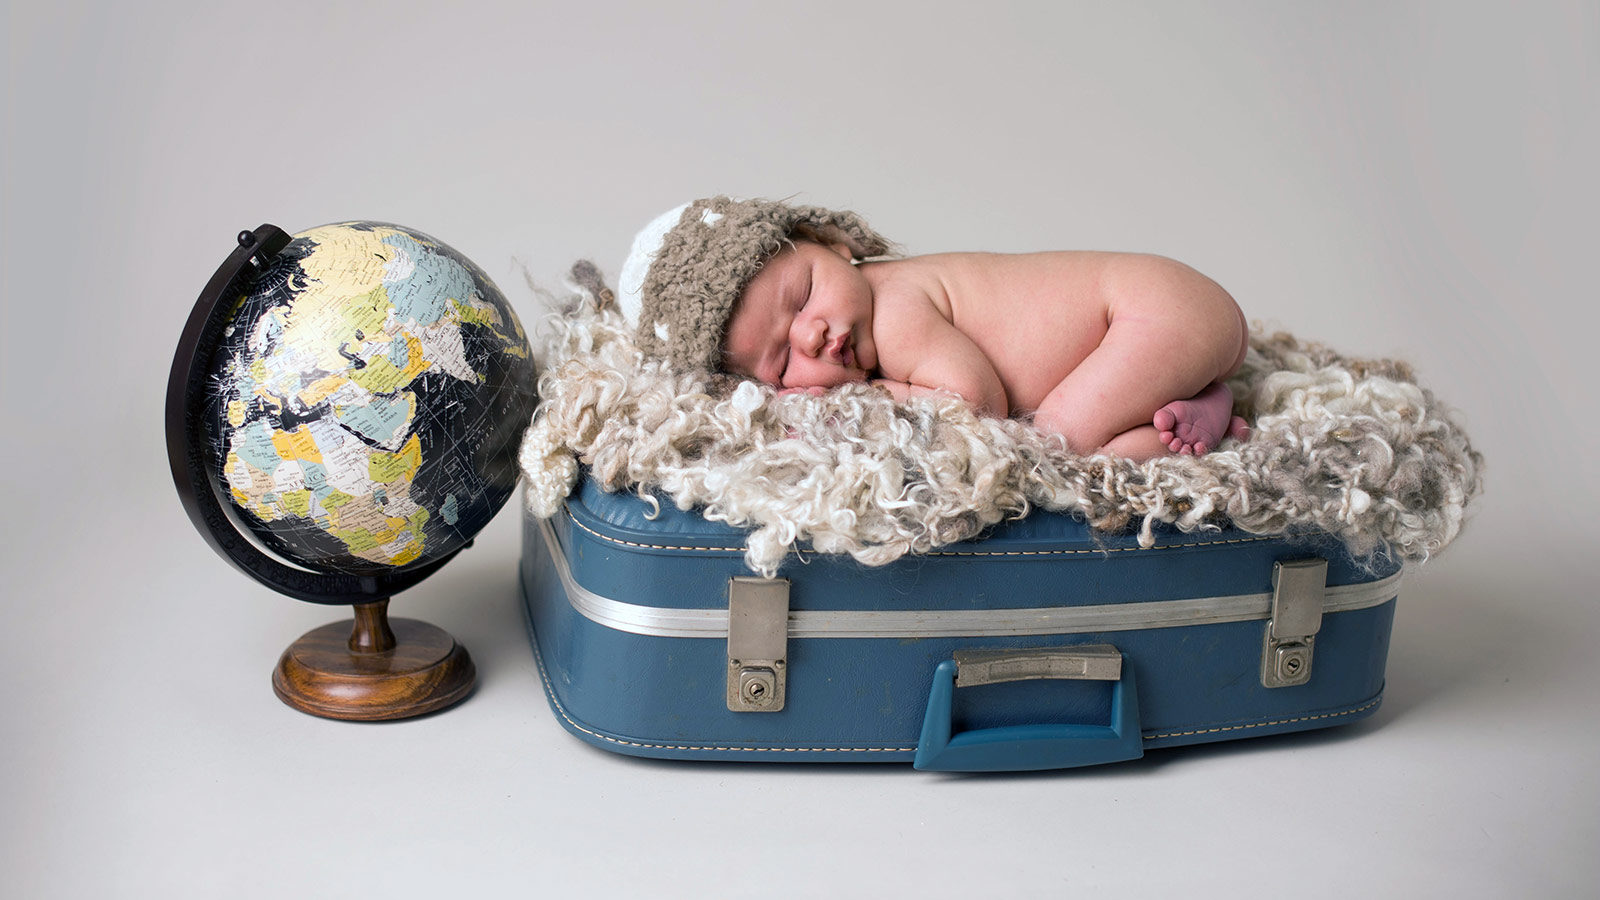 Baby sleeps on a piece of luggage next to a globe - helping kids find nap time on the road